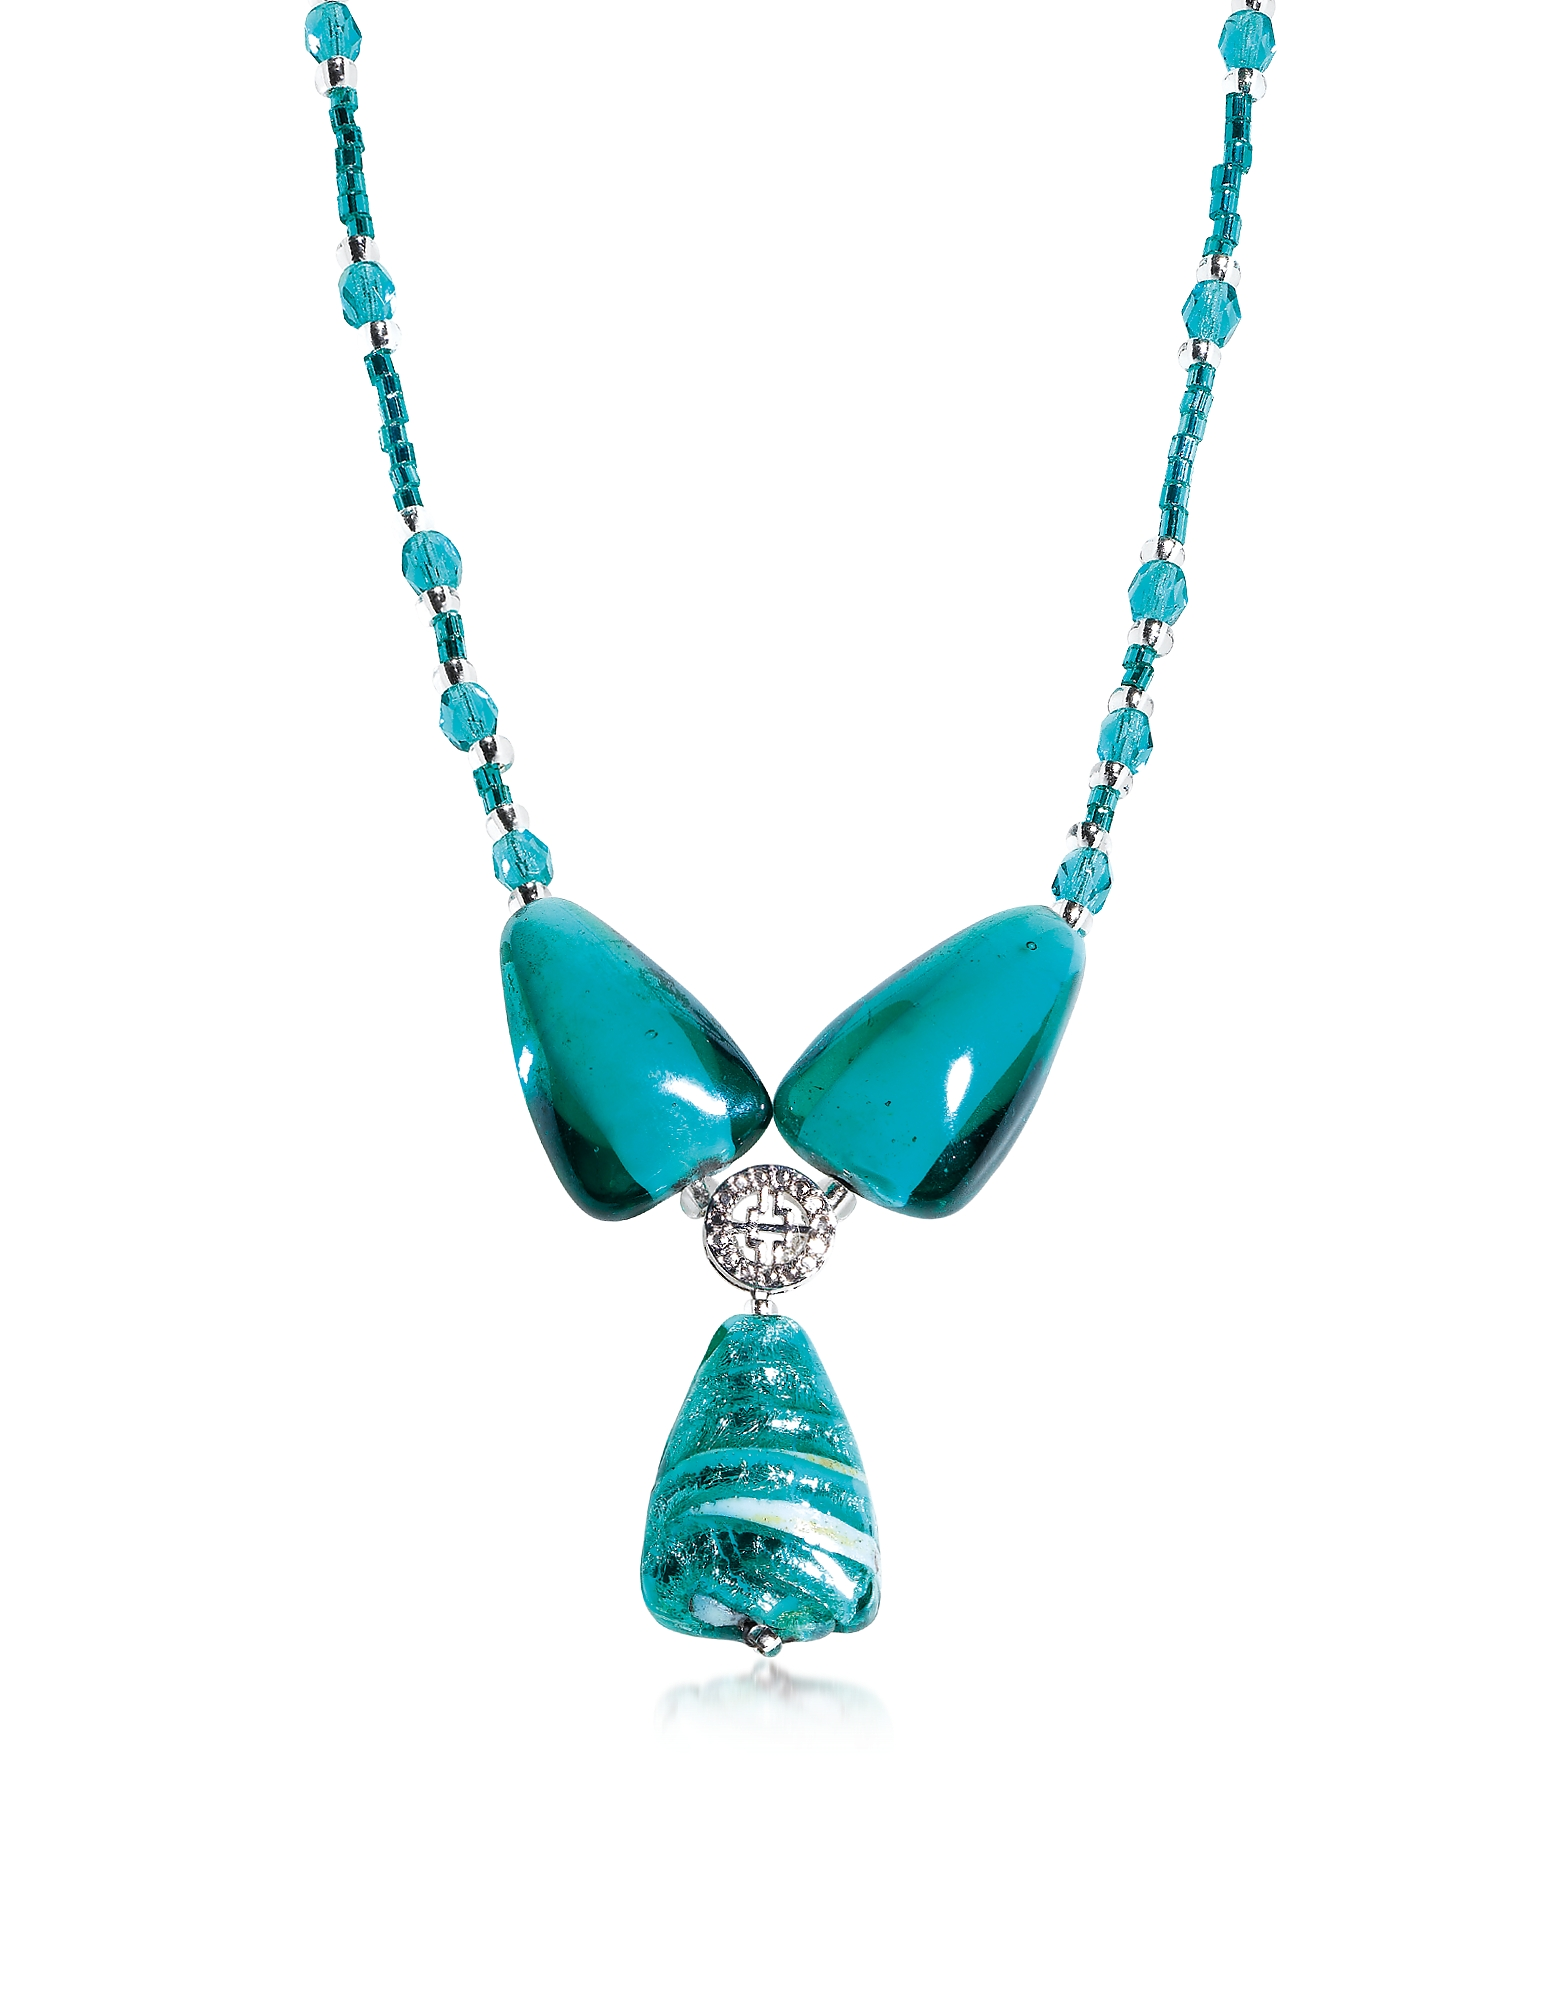 Antica Murrina Necklaces, Marina 3 - Turquoise Green Murano Glass and Silver Leaf Pendant Necklace